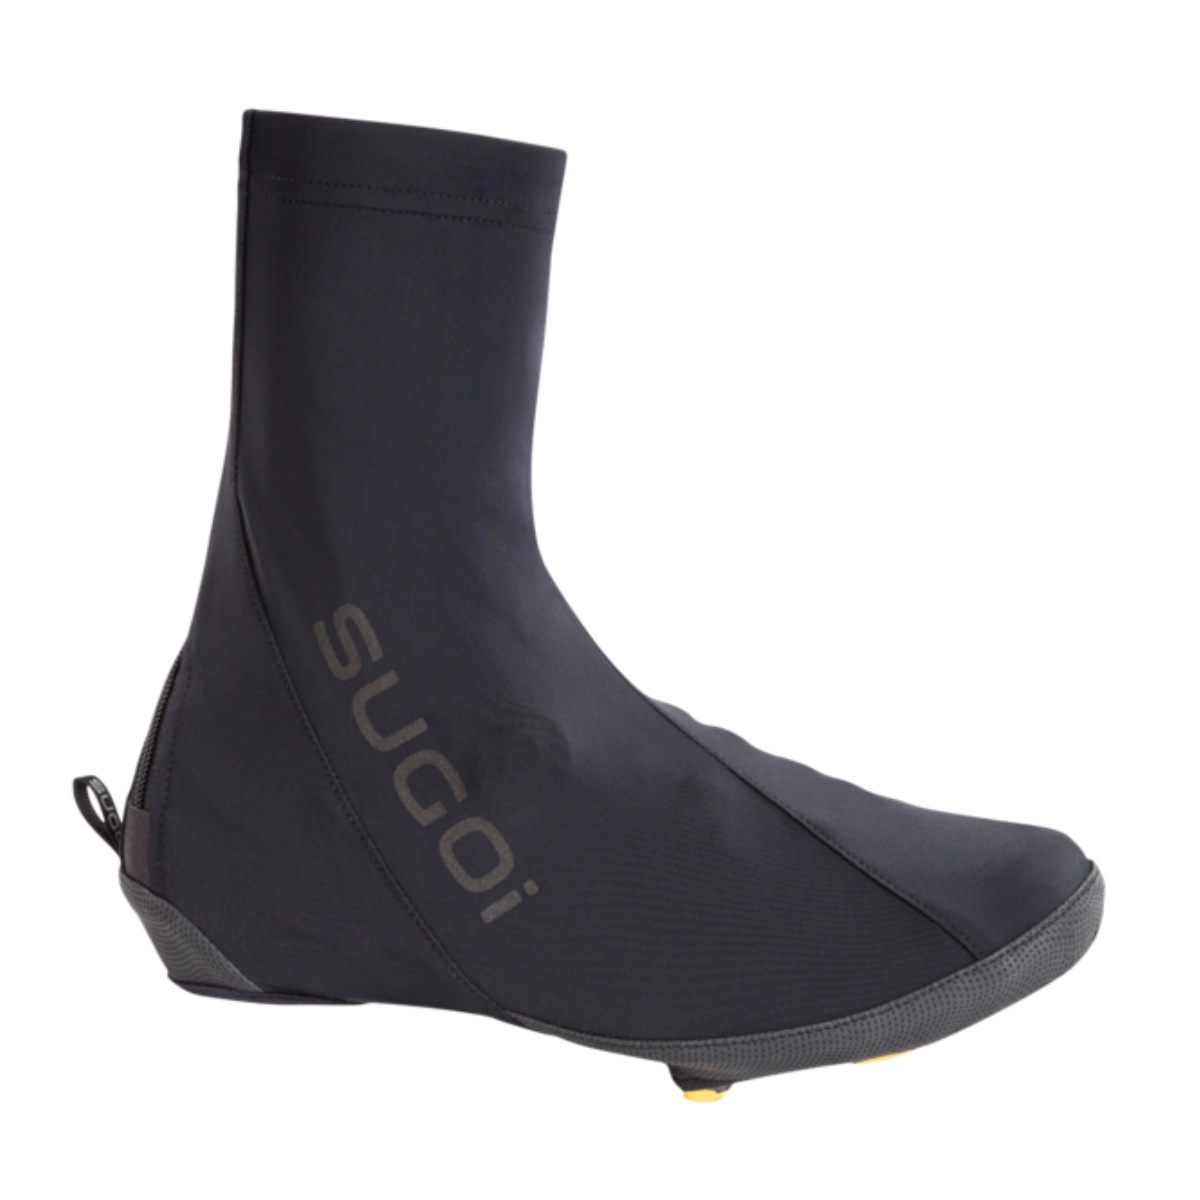 COUVRE-CHAUSSURES SUGOI RESISTOR AERO